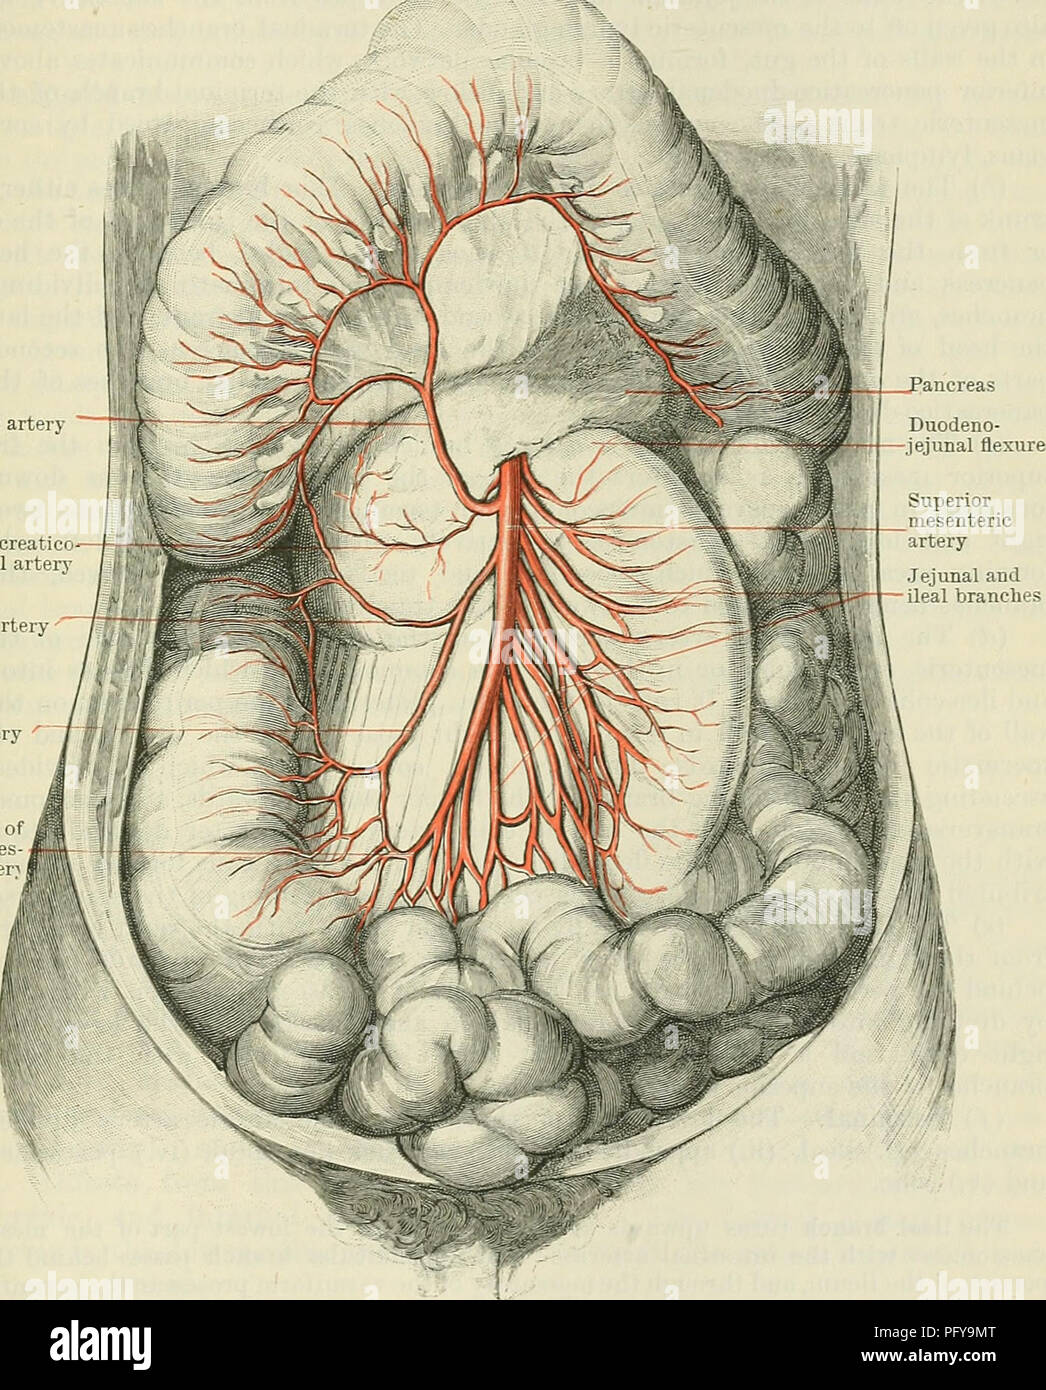 hight resolution of cunningham s text book of anatomy anatomy visceeal beanches of the abdominal aoeta